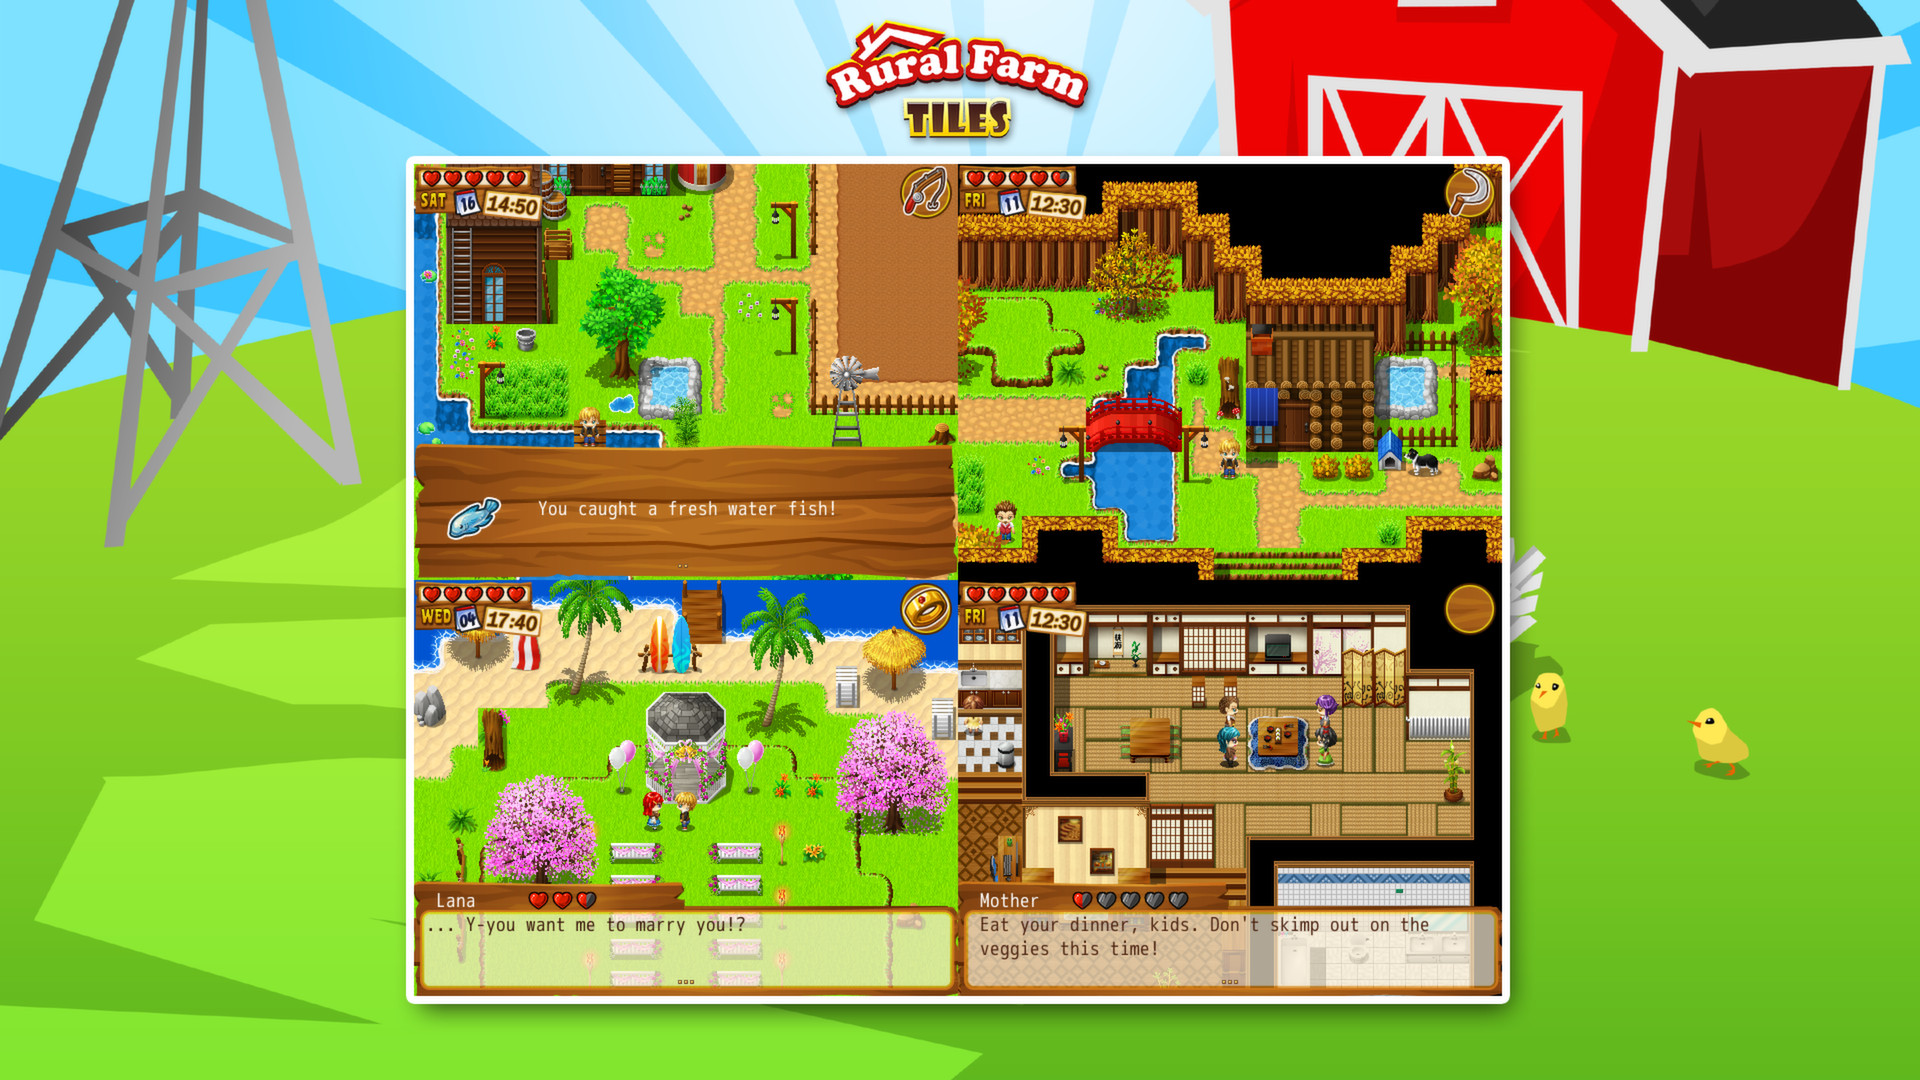 RPG Maker VX Ace - Rural Farm Tiles Resource Pack screenshot